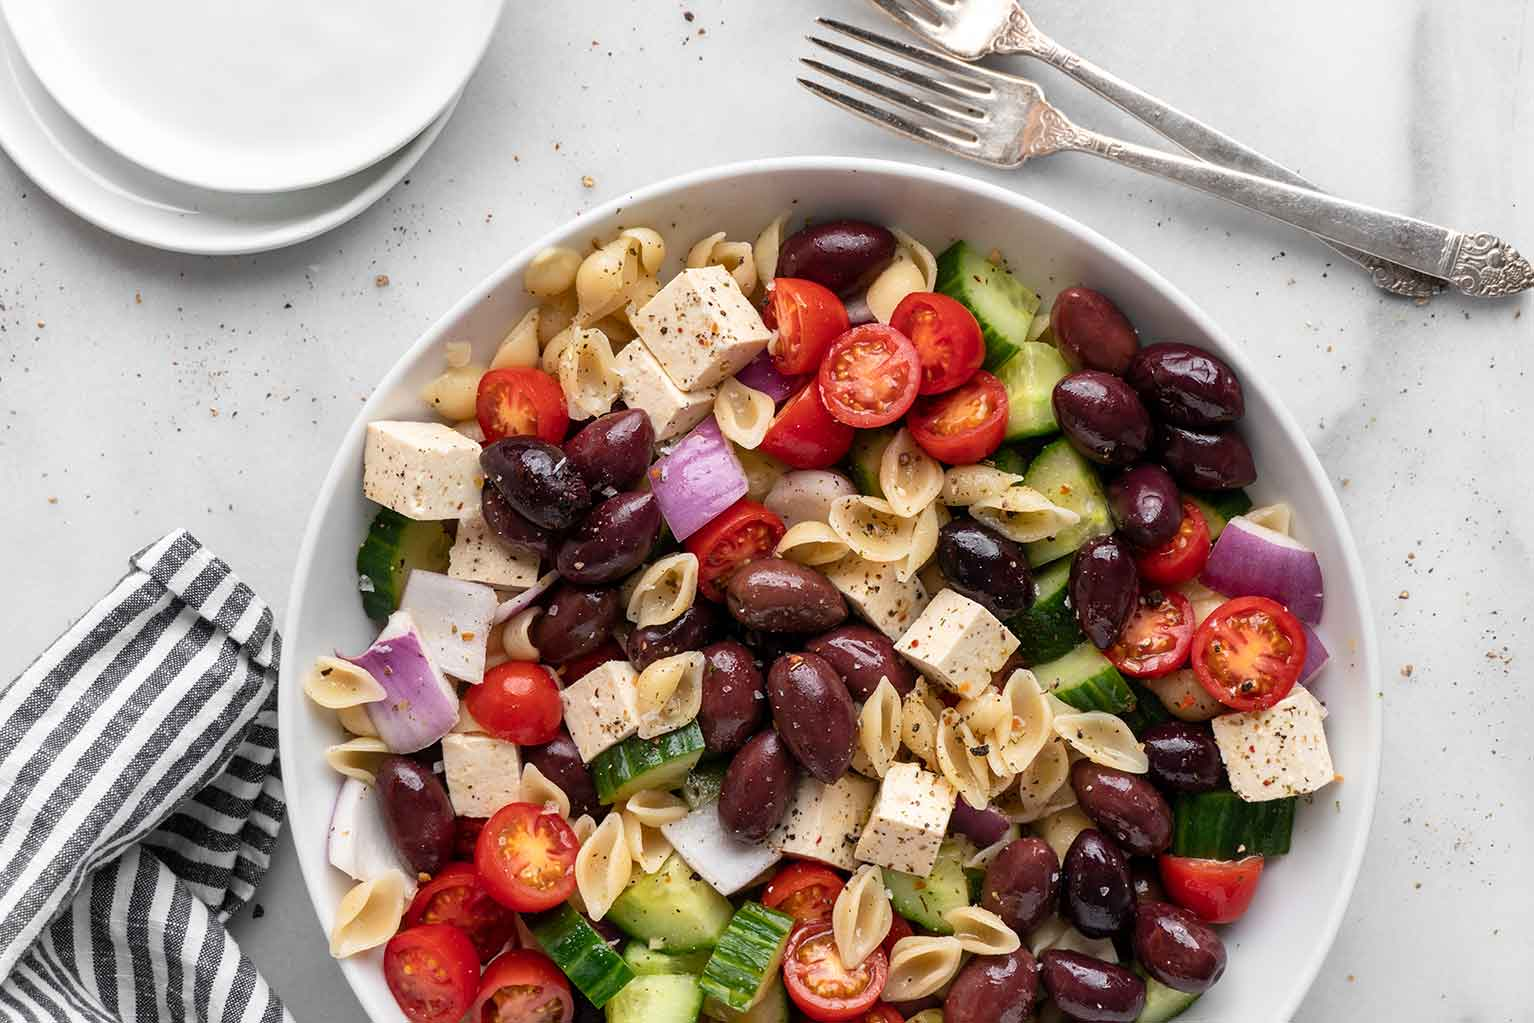 Greek pasta salad with olives, cucumber, tomato, feta in a white bowl